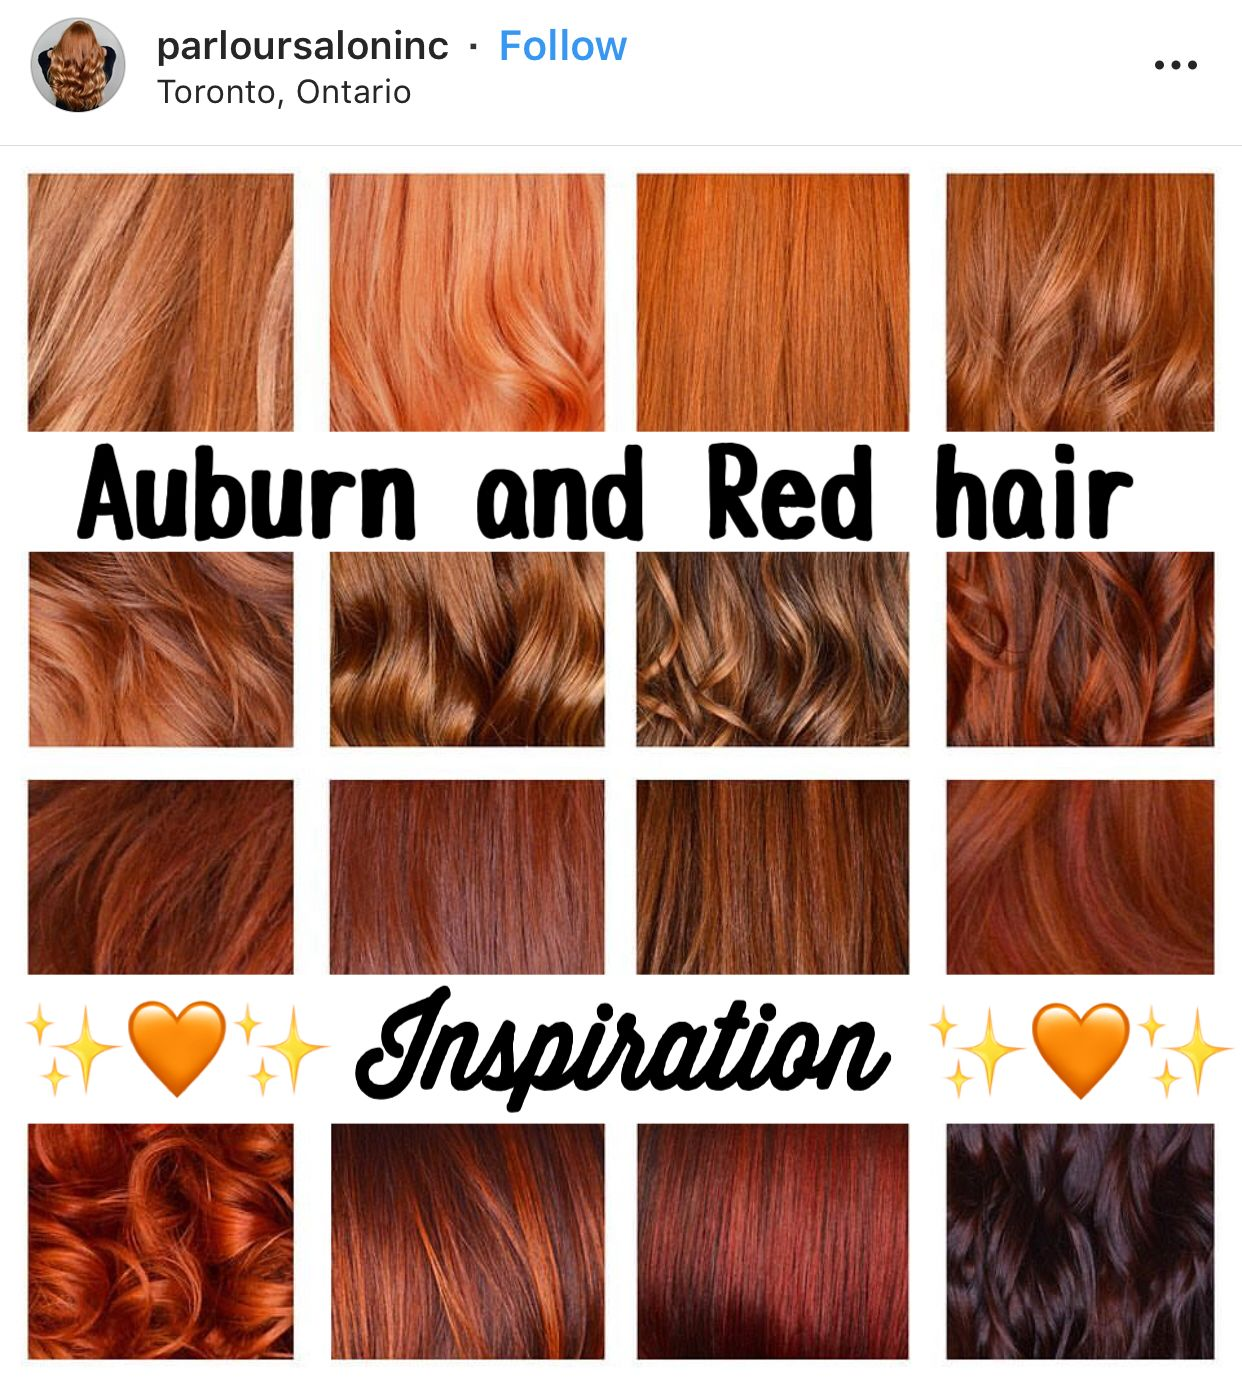 Pin By Paola On Red And Auburn Hair Inspiration Alburn Hair